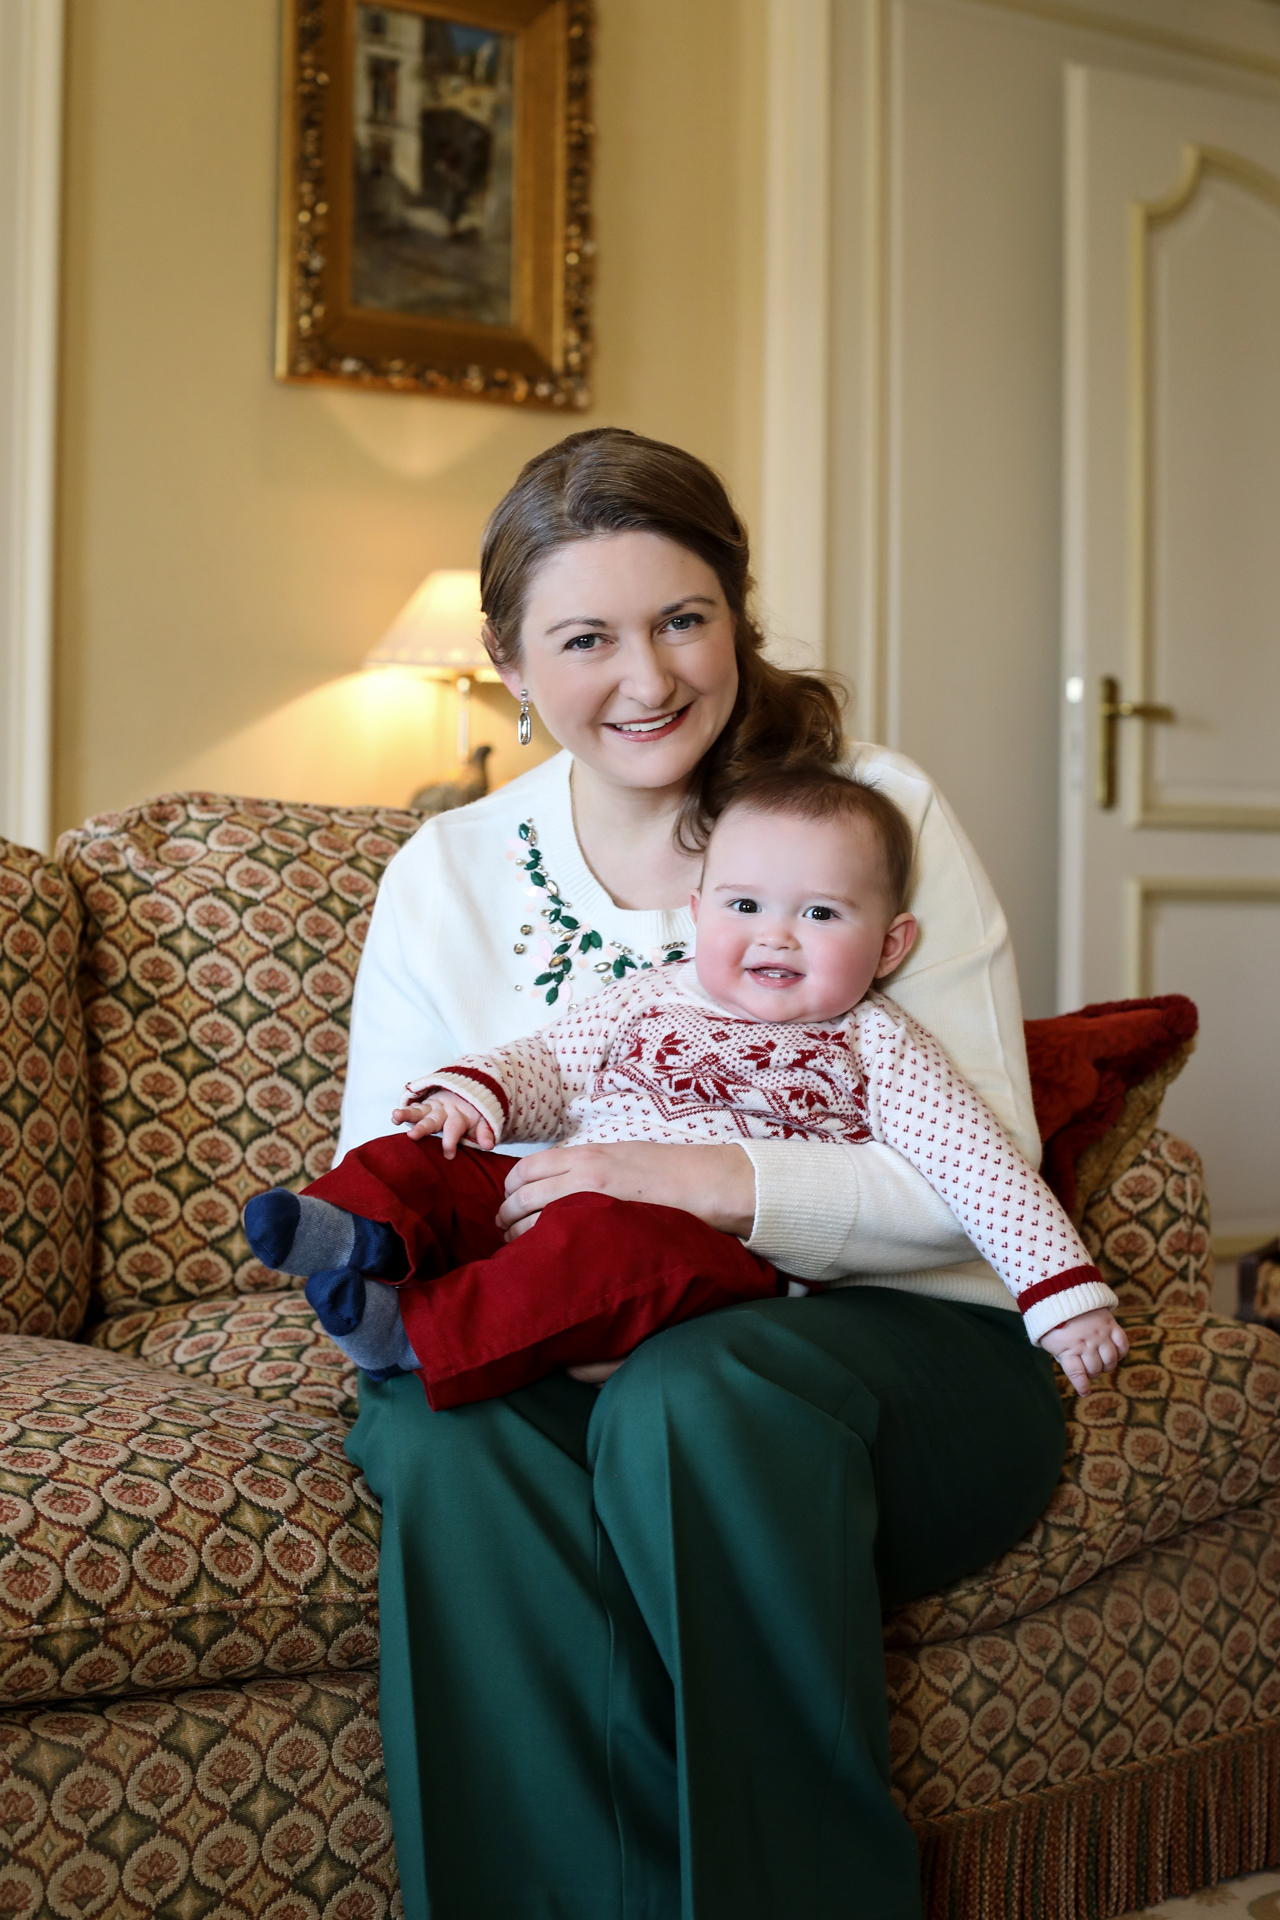 Herediatery Grand Duchess Stephanie and her son Prince Charles in a new picture marking Duchess' 37th birthday